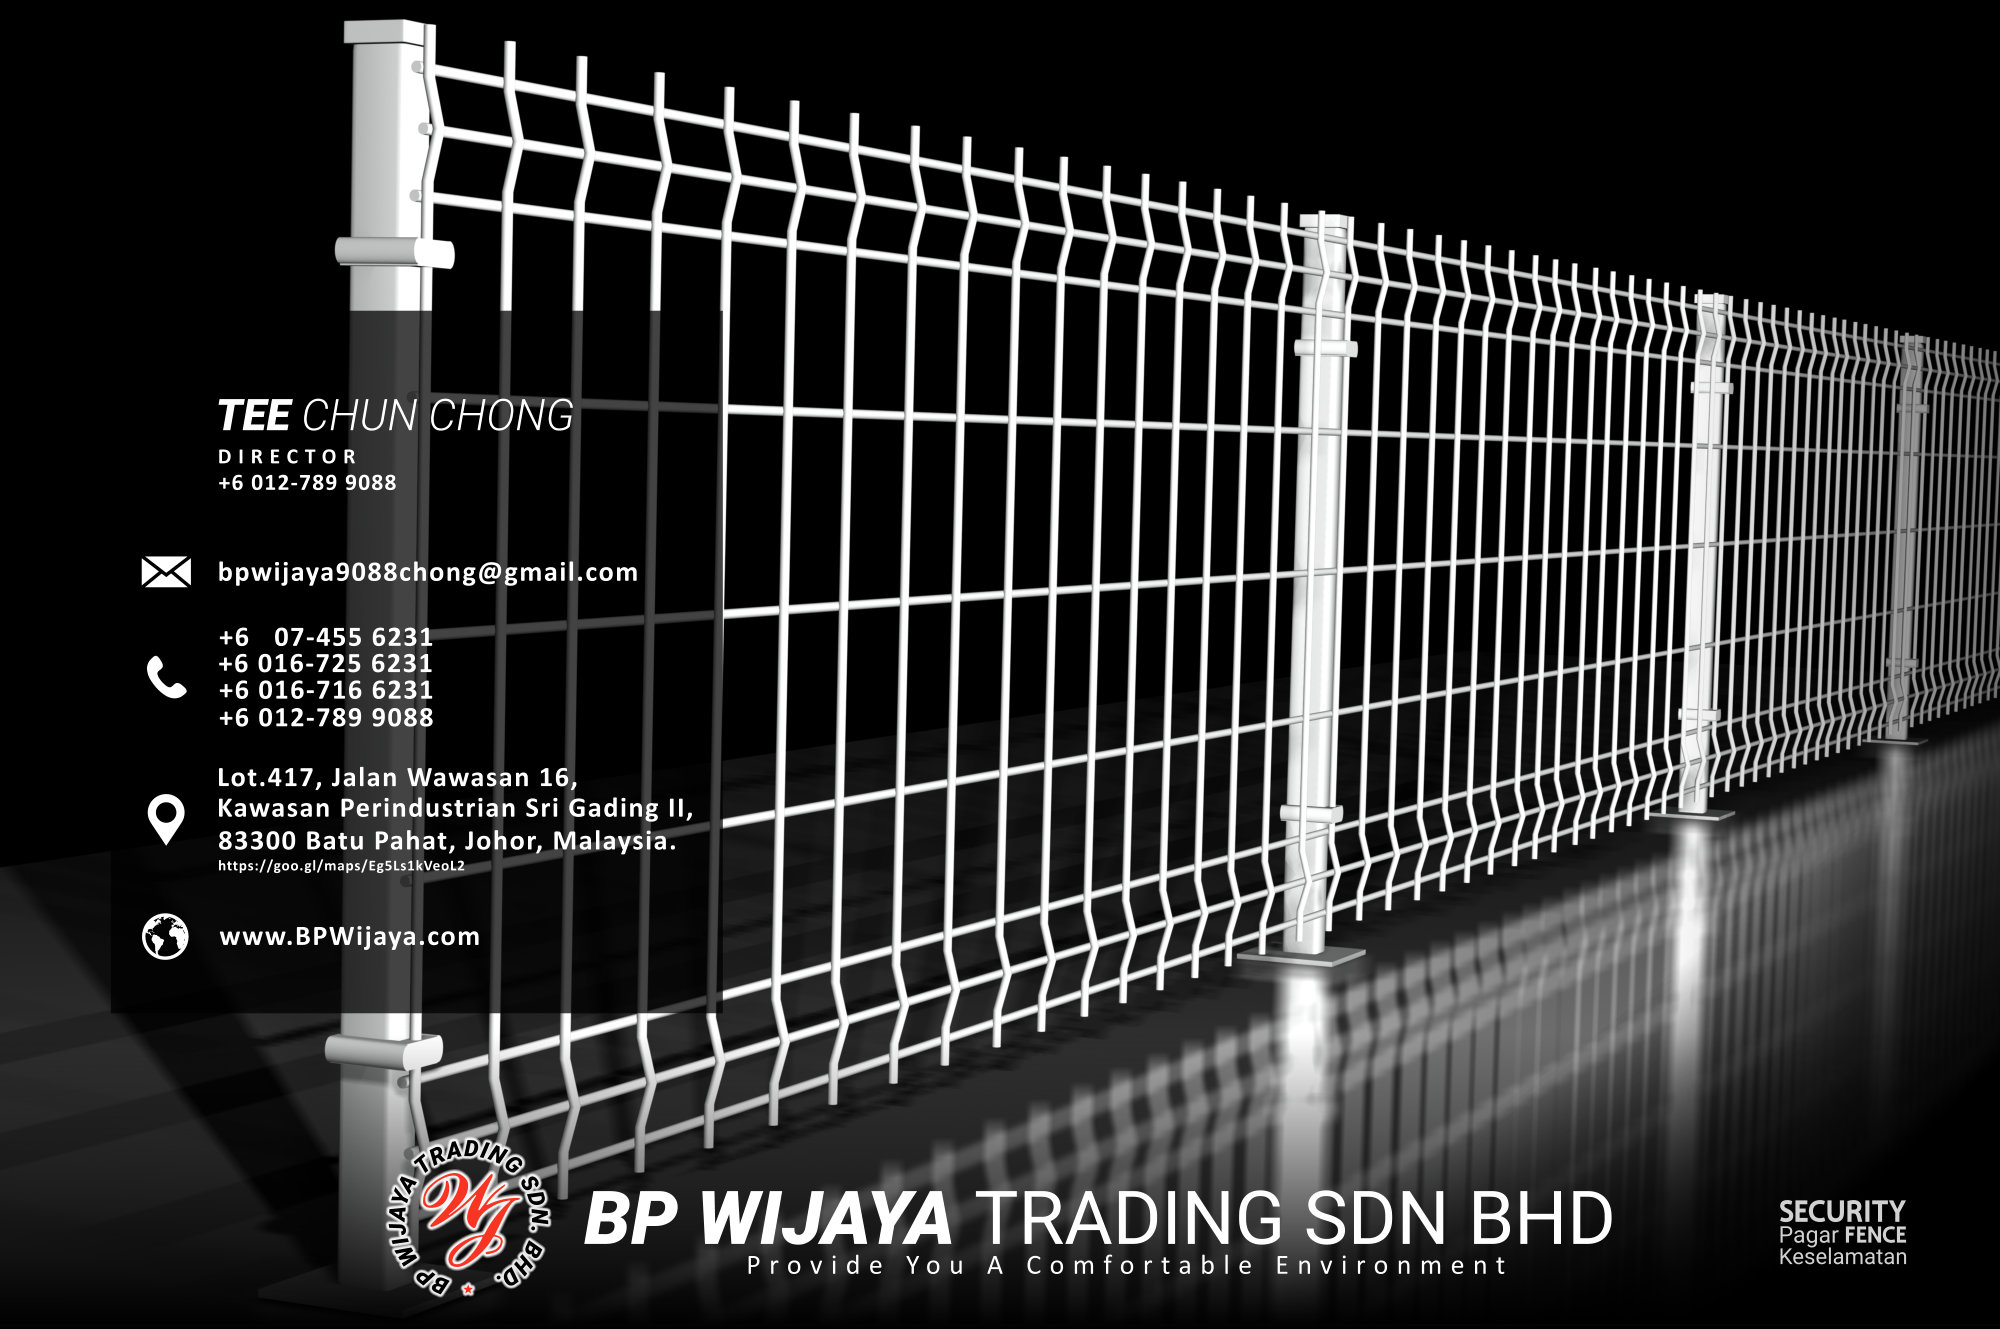 Kuala Lumpur Security Fence Supply we are manufacturer of security fence BP Wijaya Trading Sdn Bhd Safety Fence Building Materials for Housing Construction factory fence house beauty fence A03-028